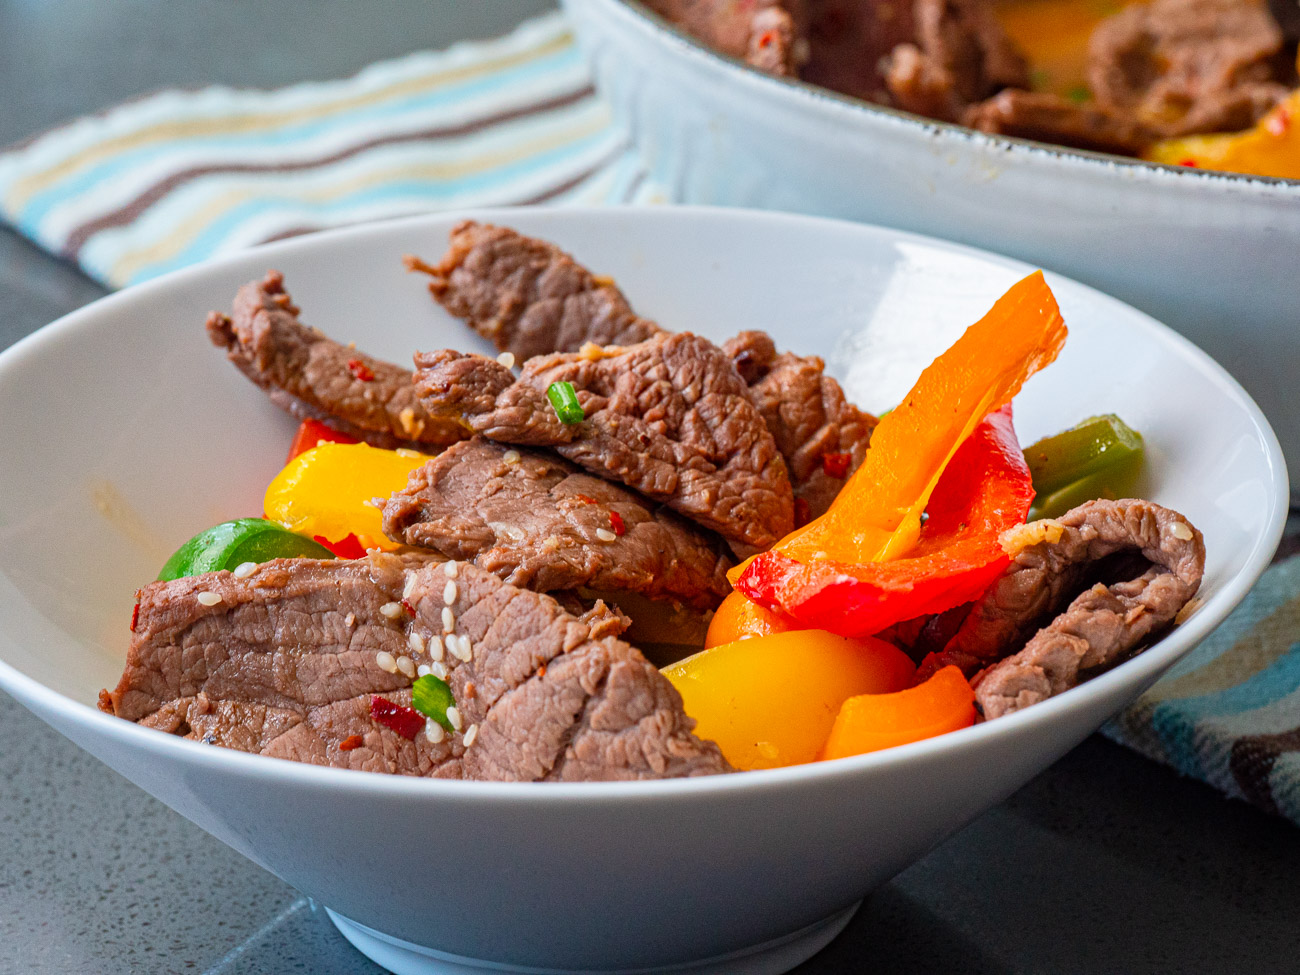 A bowl of steak and peppers